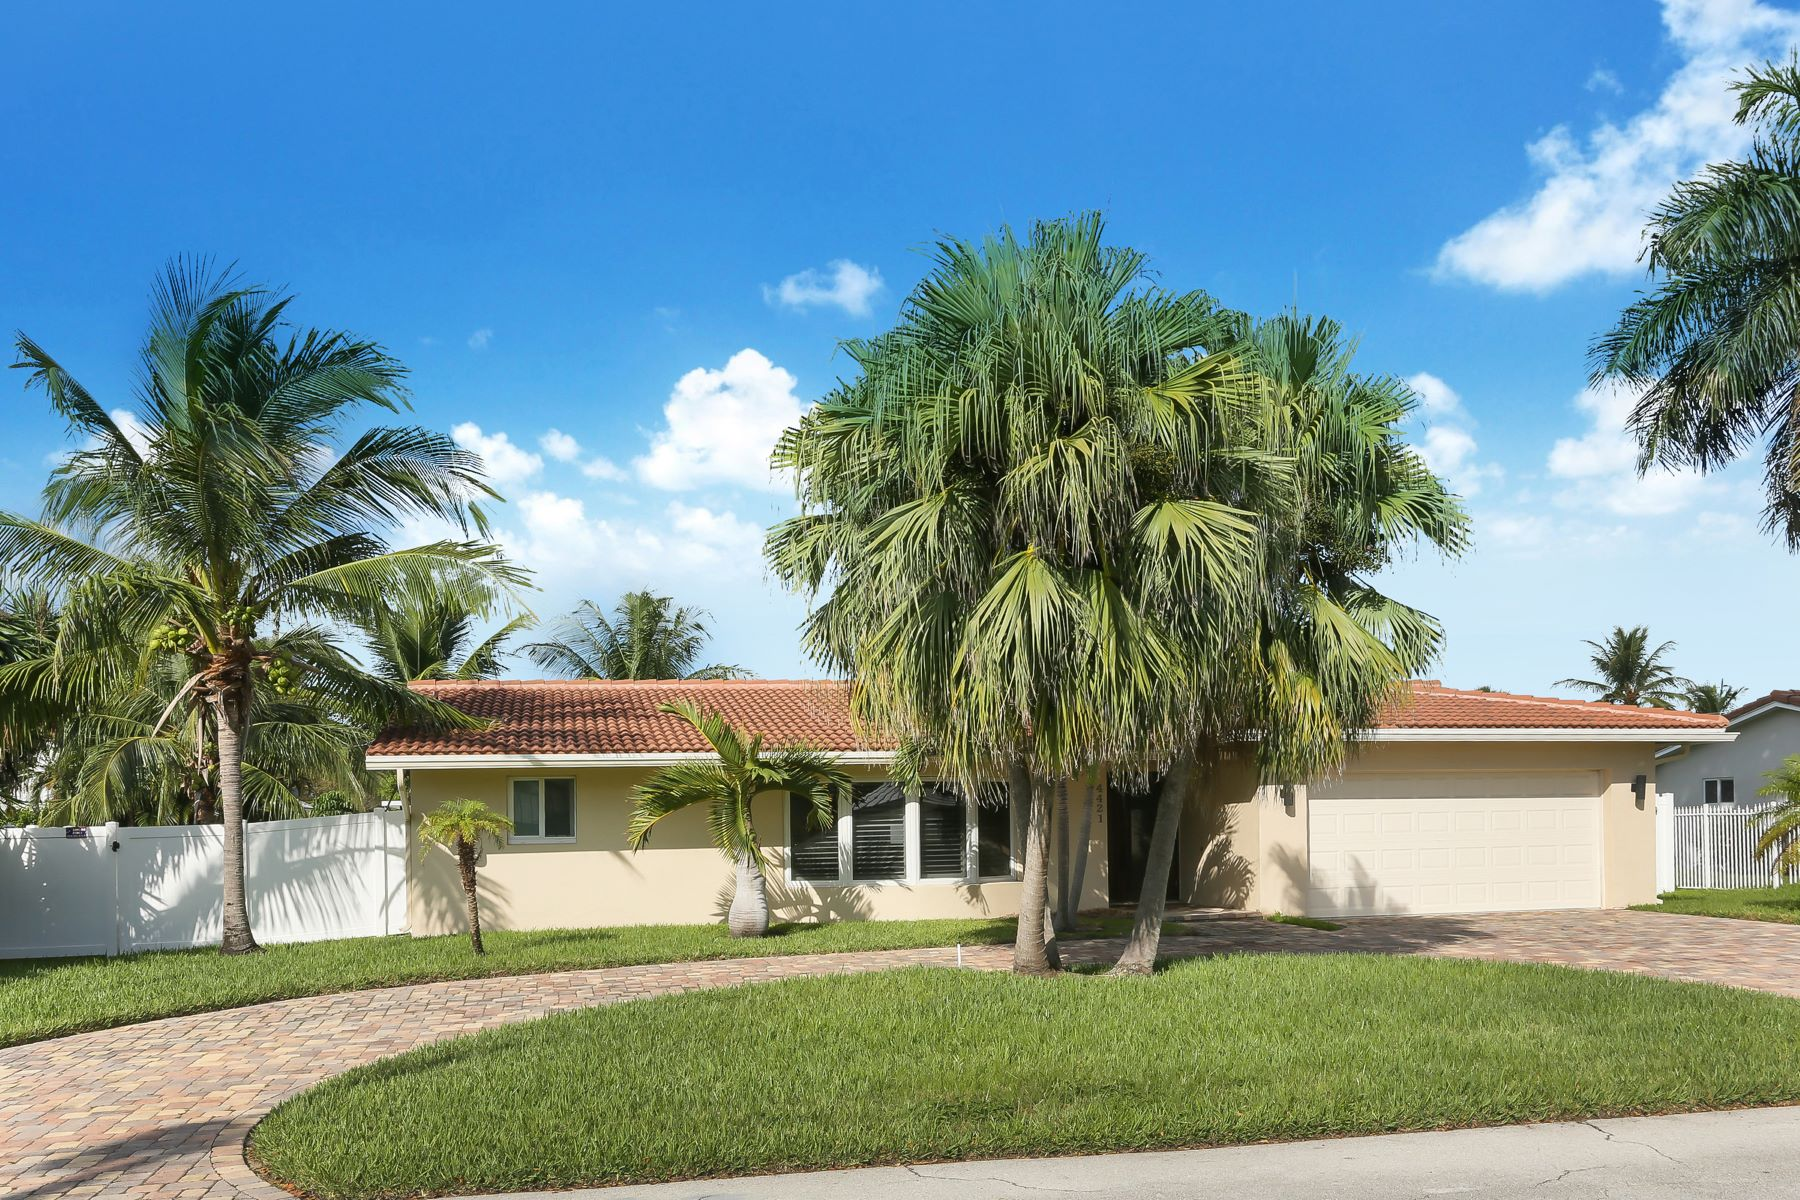 Single Family Homes for Sale at 4421 Ne 26th Ave Lighthouse Point, Florida 33064 United States